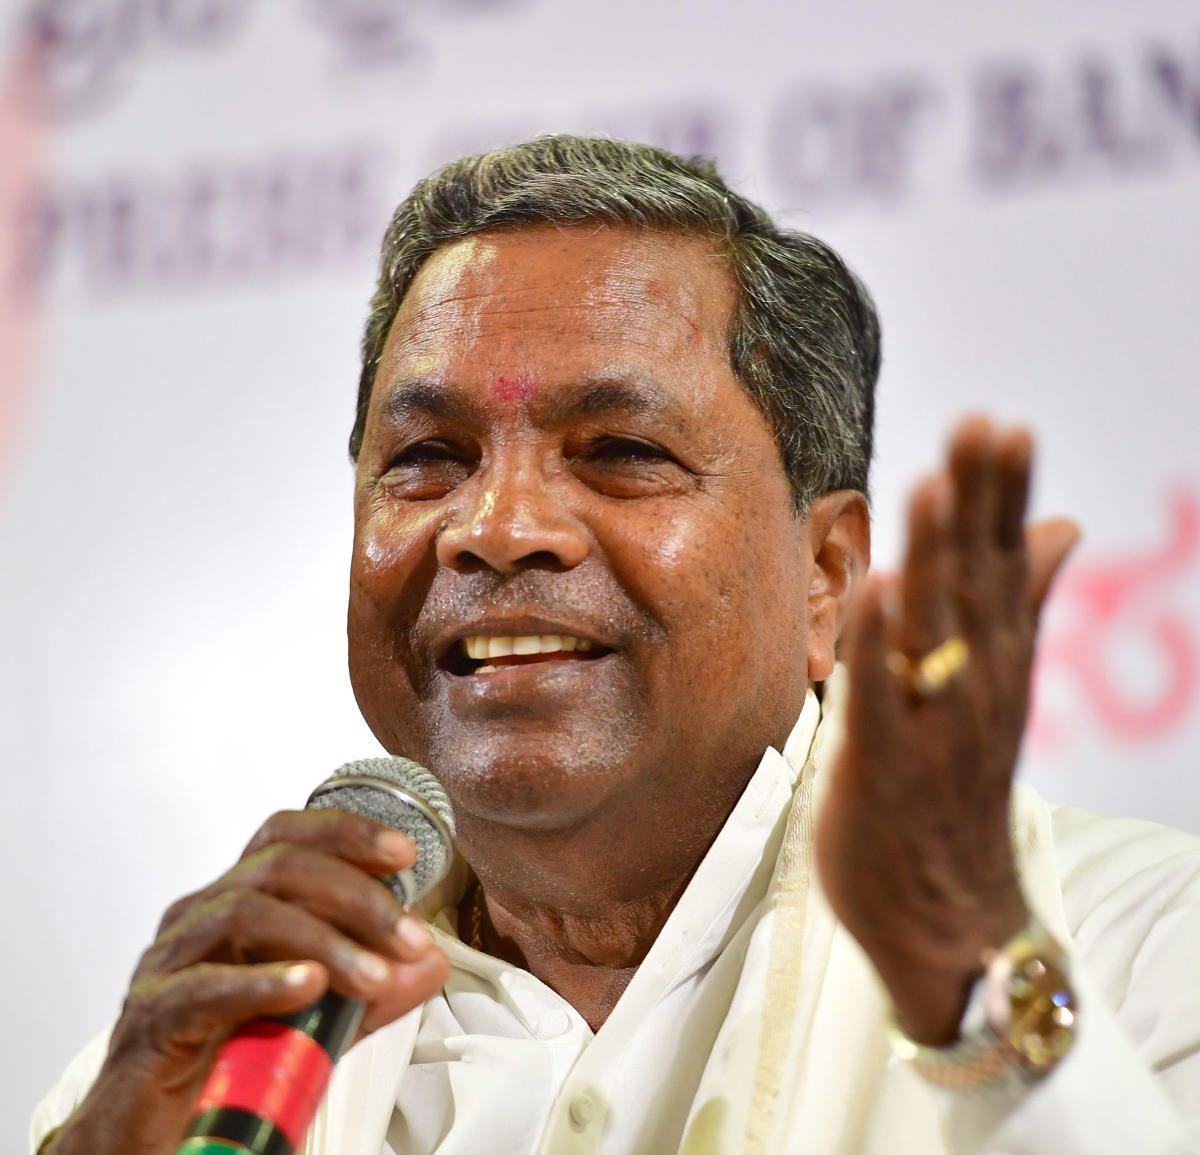 """Discussion is going on between both the parties. We will resolve it amicably"", Siddaramaiah said. File photo"